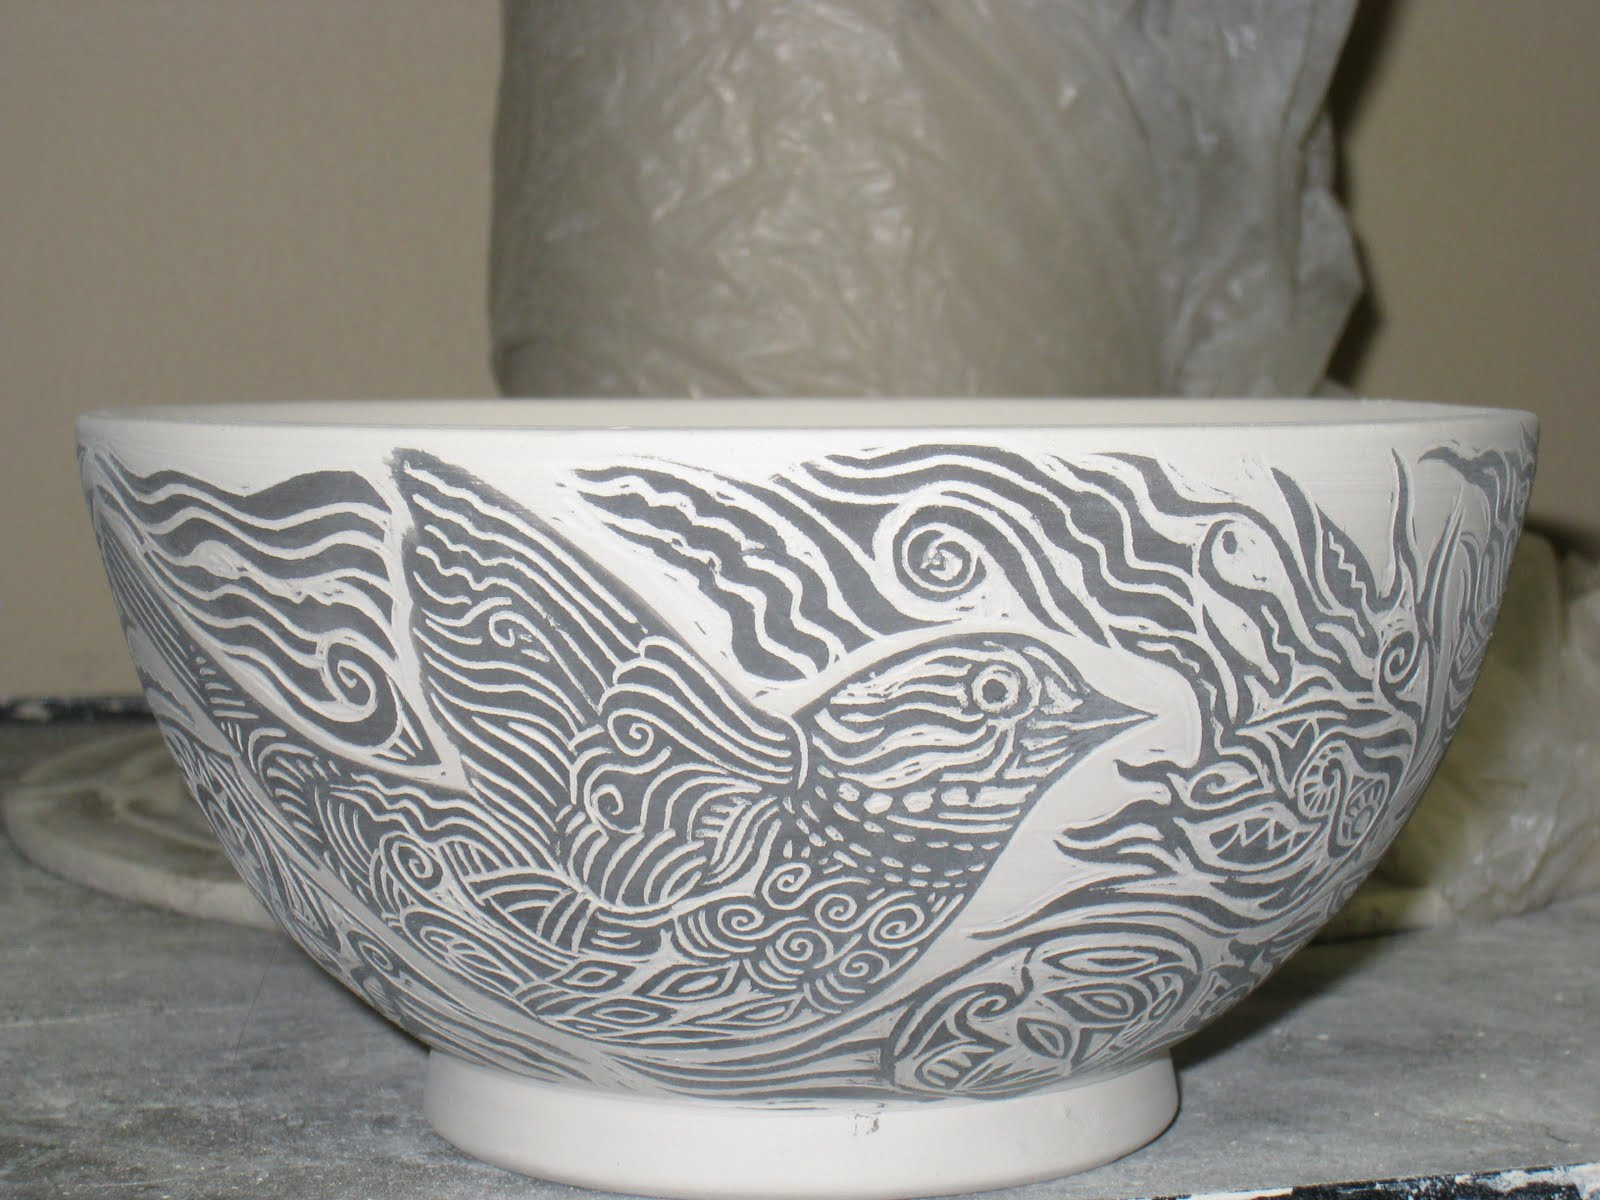 Ceramic Cups Designs Carving Designs Into Cups